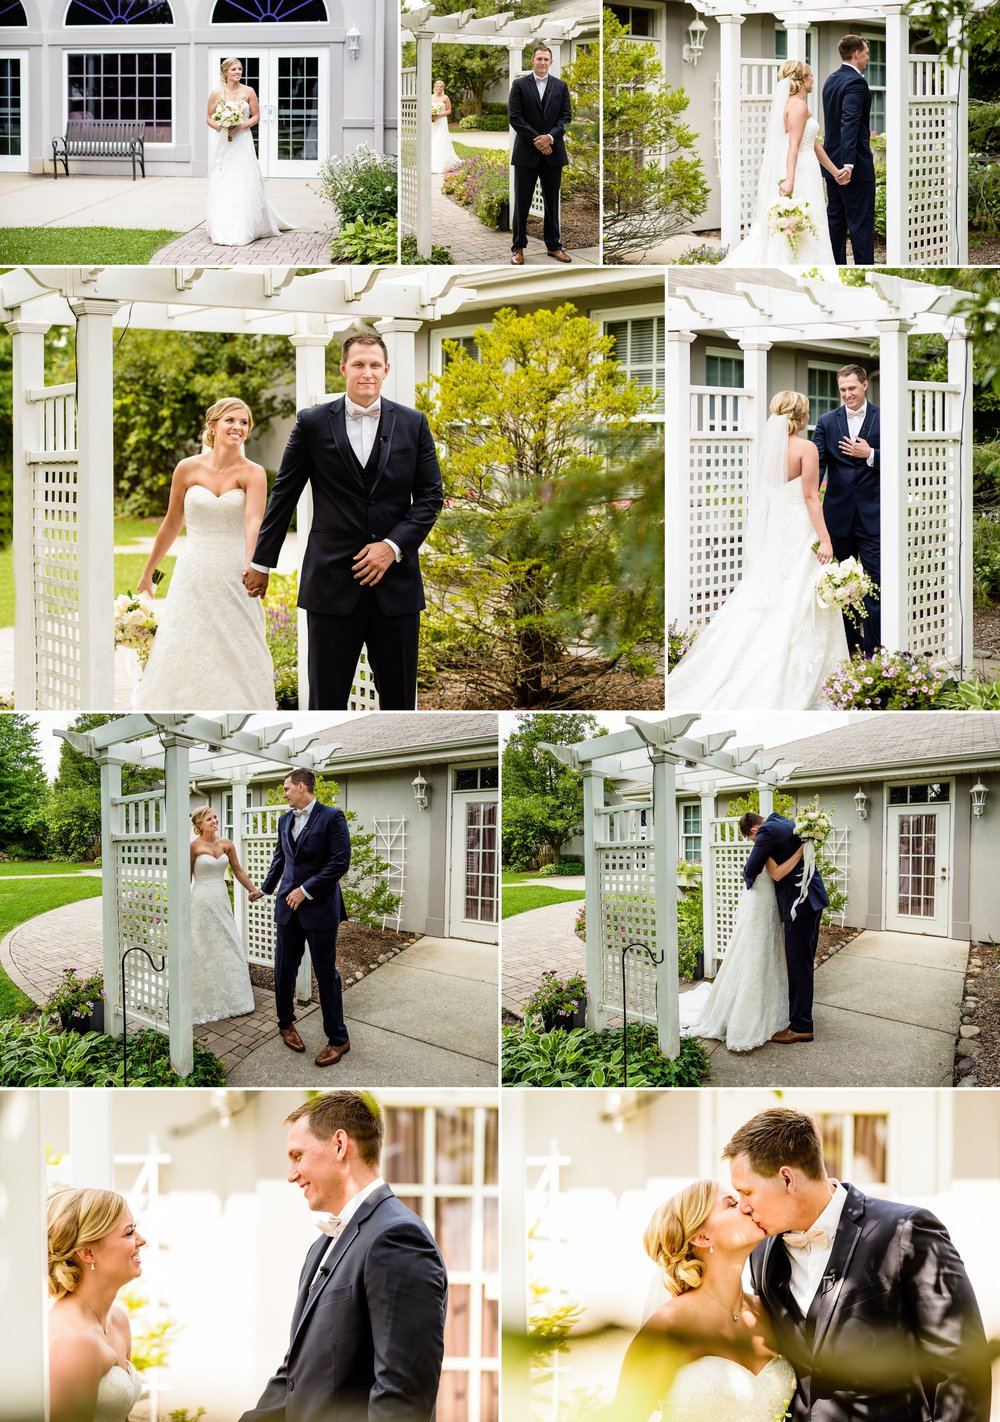 First look for the bride and groom in the garden at Aberdeen Manor.